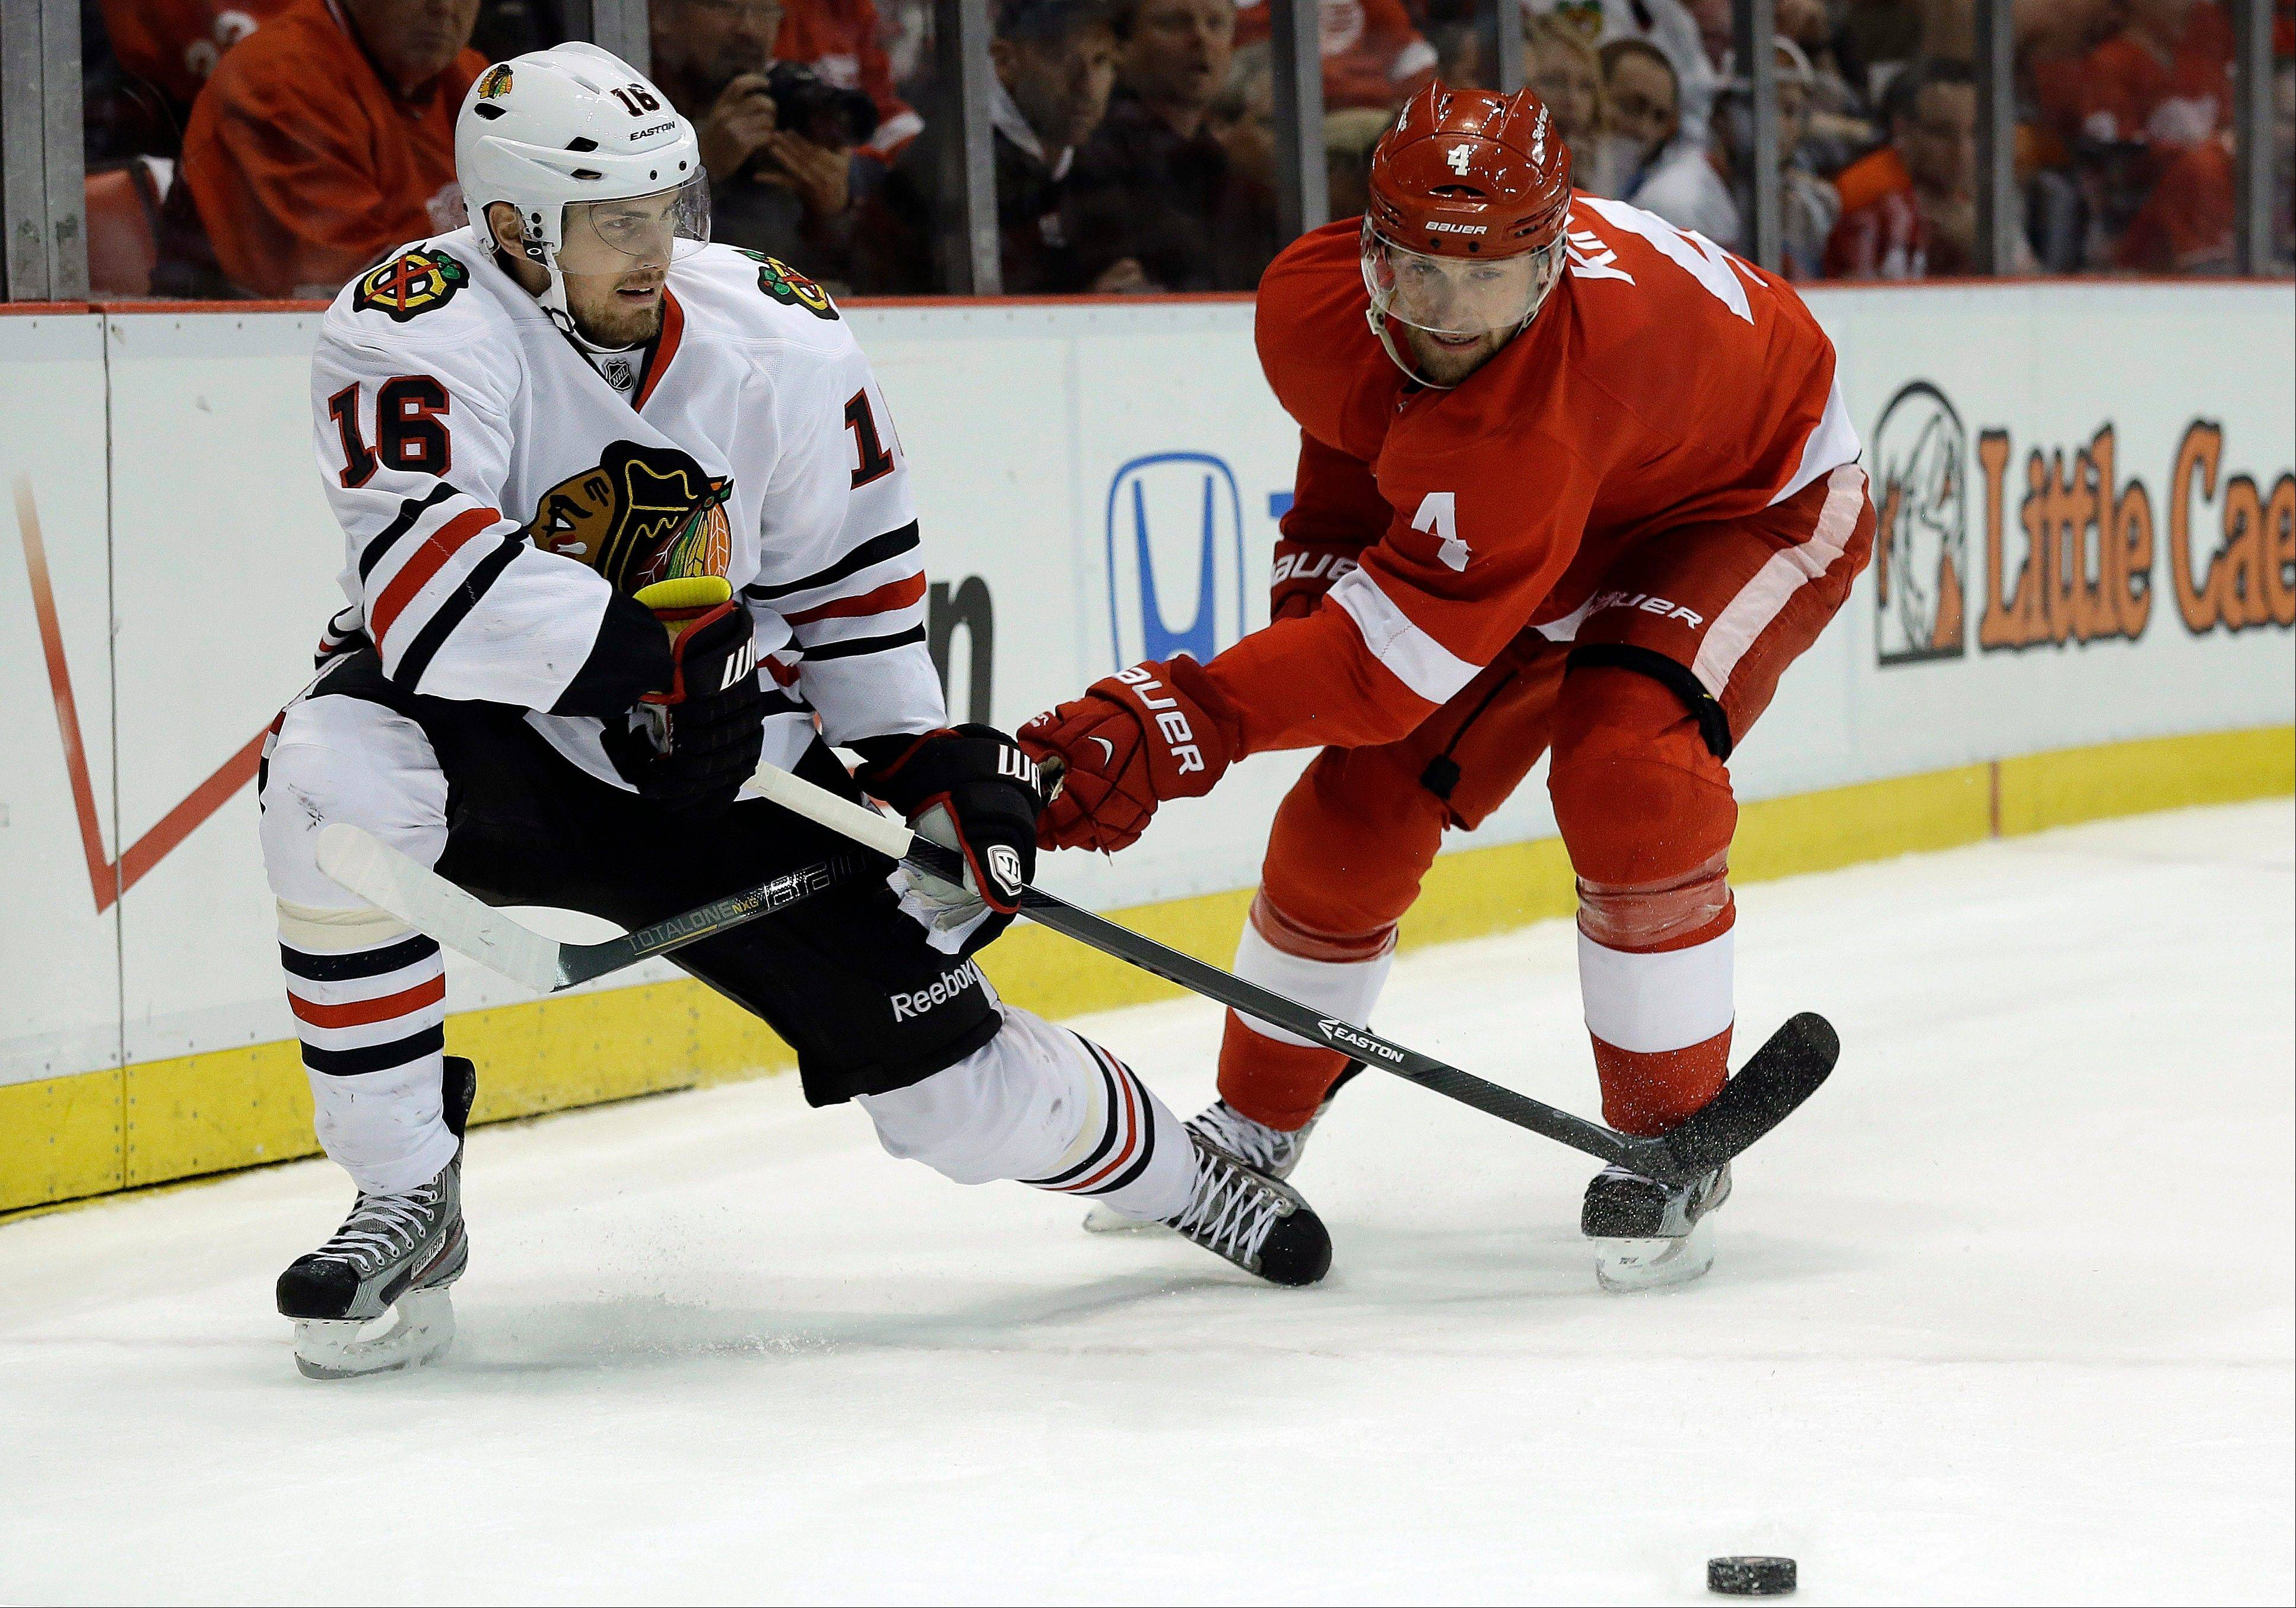 Detroit Red Wings defenseman Jakub Kindl (4), of the Czech Republic, defends against Chicago Blackhawks center Marcus Kruger (16), of Sweden, during the first period.